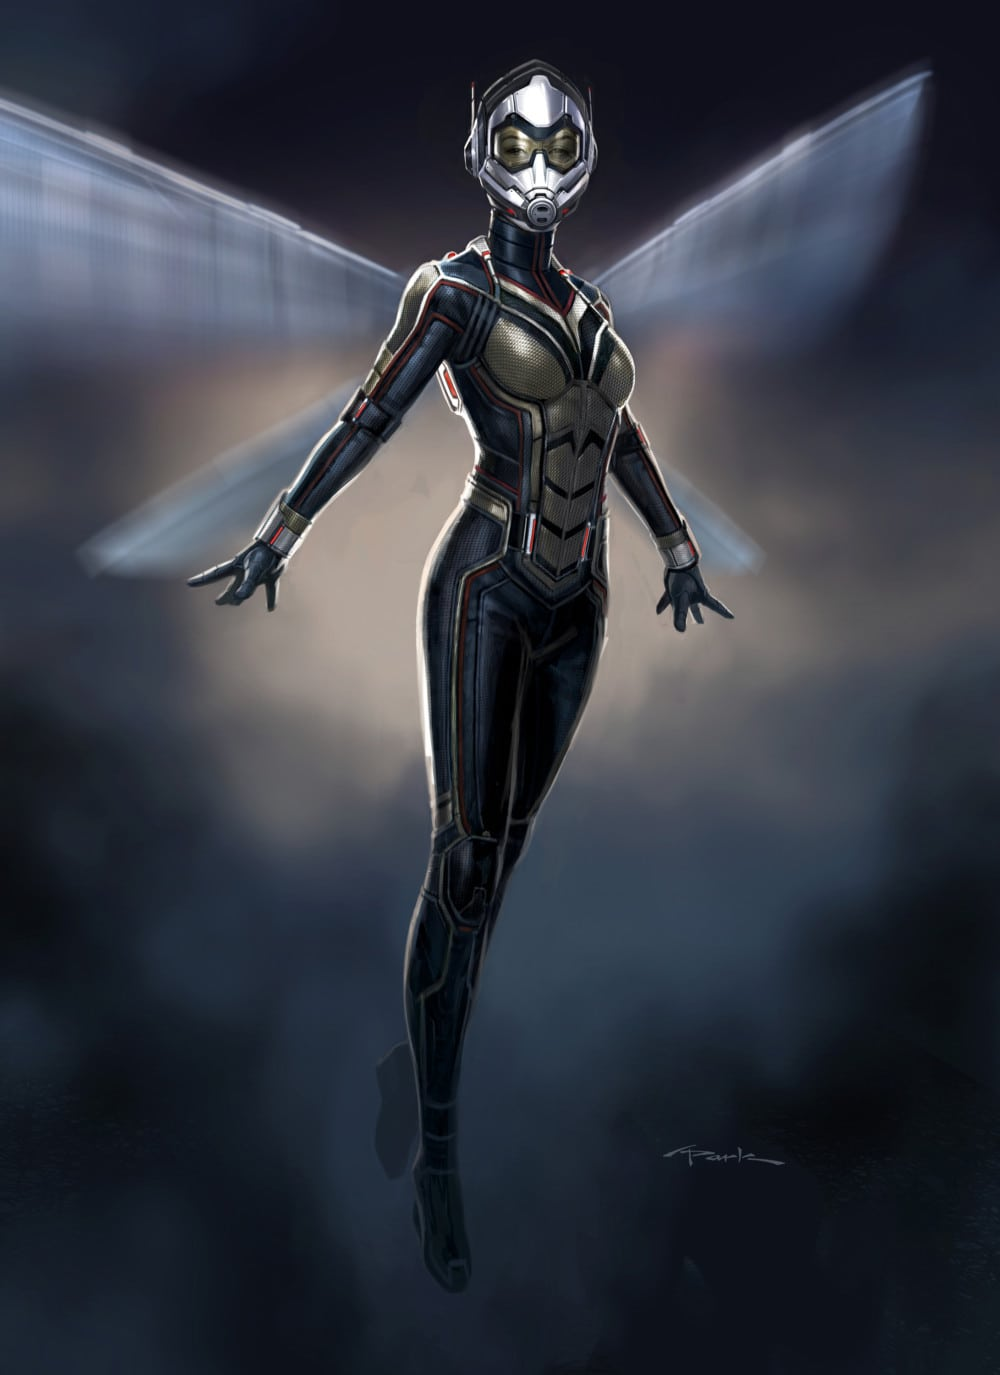 Evangeline Lilly Talks Equality in Ant-Man and the Wasp - Wasp